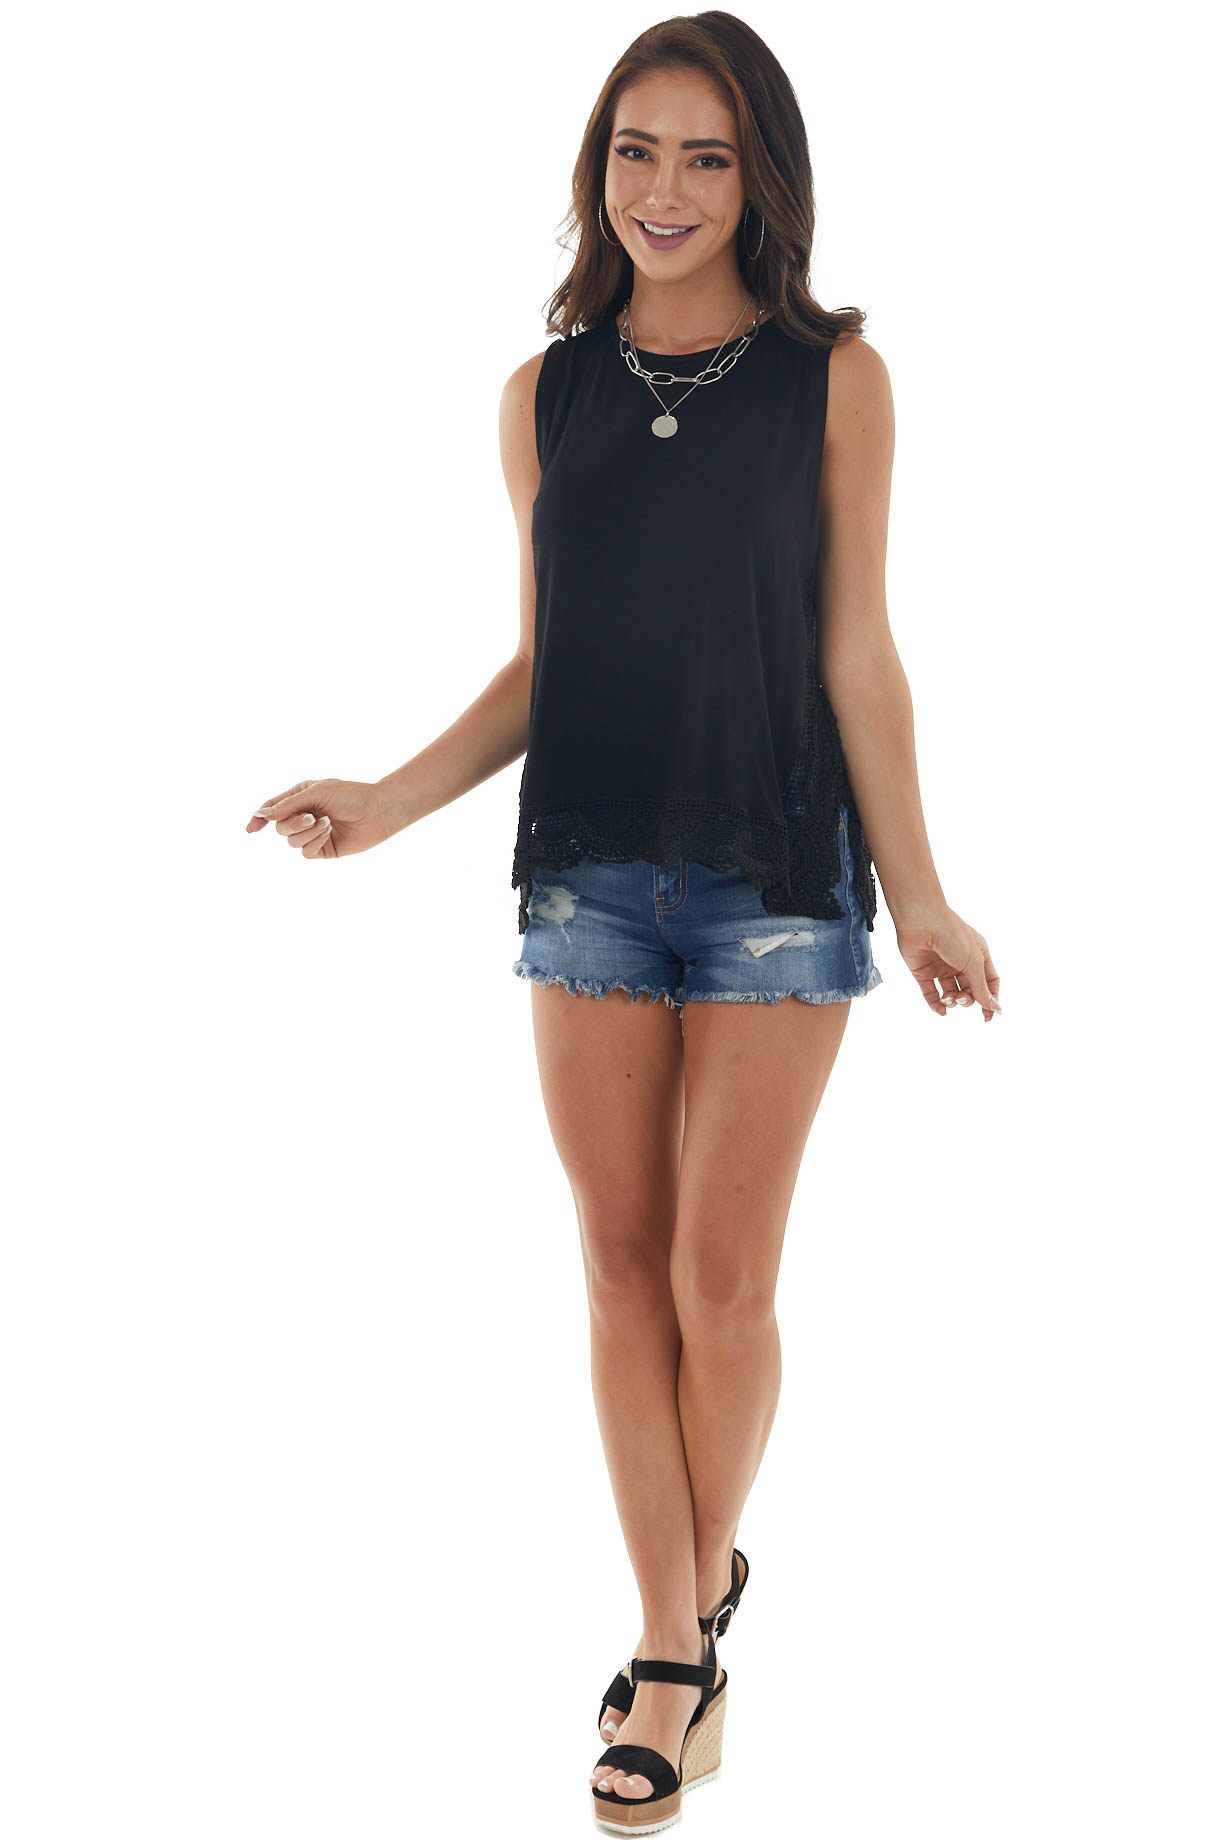 Black Tank Top with Sheer Crochet Lace Details